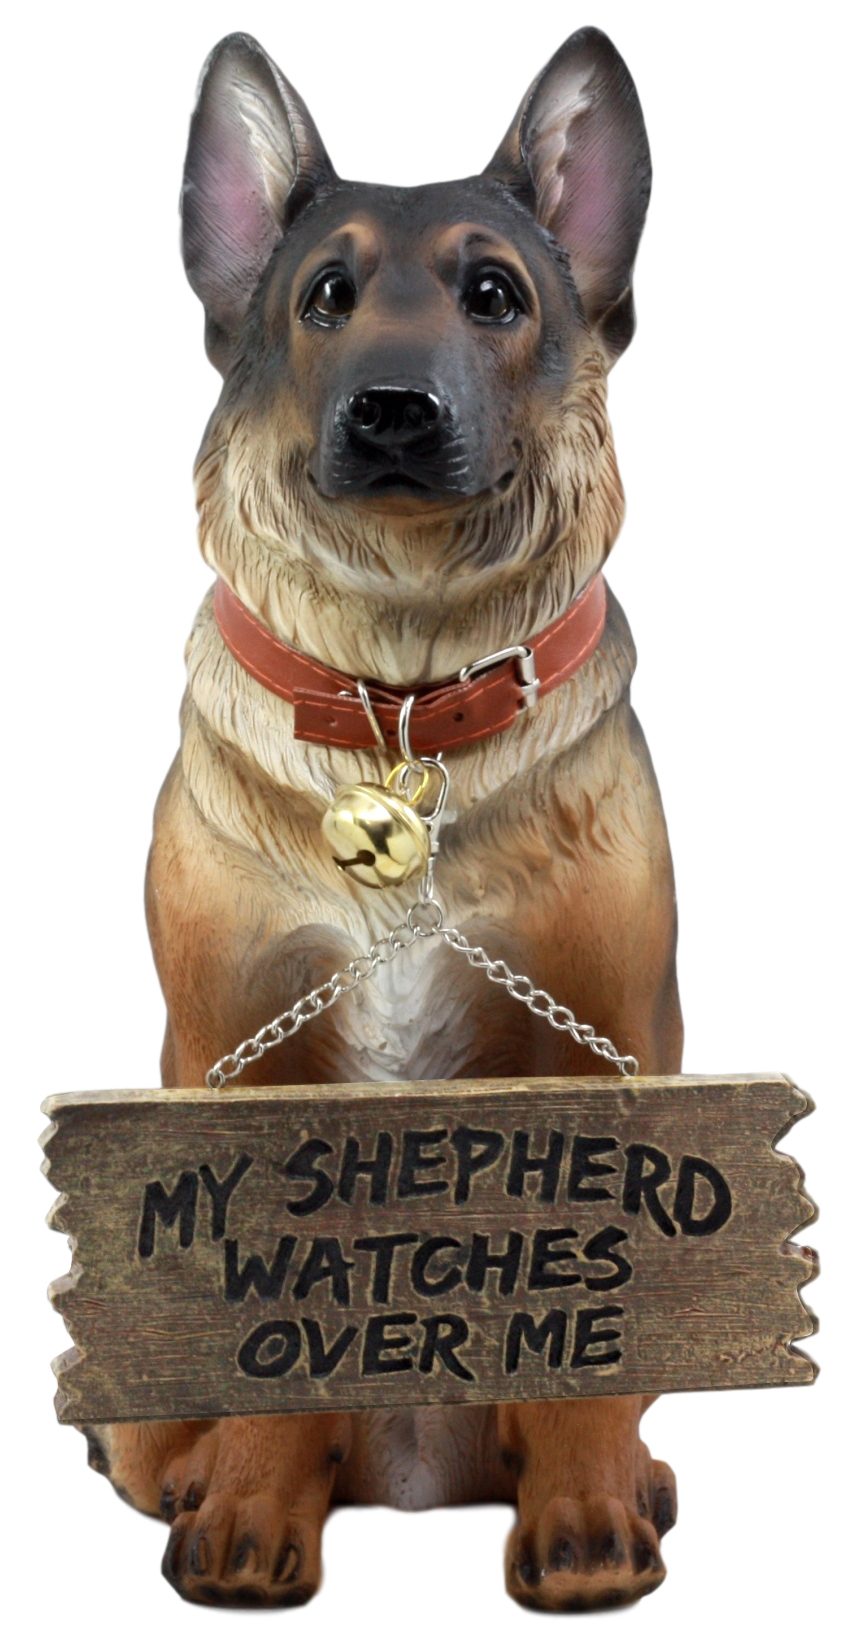 Ebros Old Faithful German Shepherd Dog Statue With Jingle Collar and Greeter Sign Patio Welcome... by